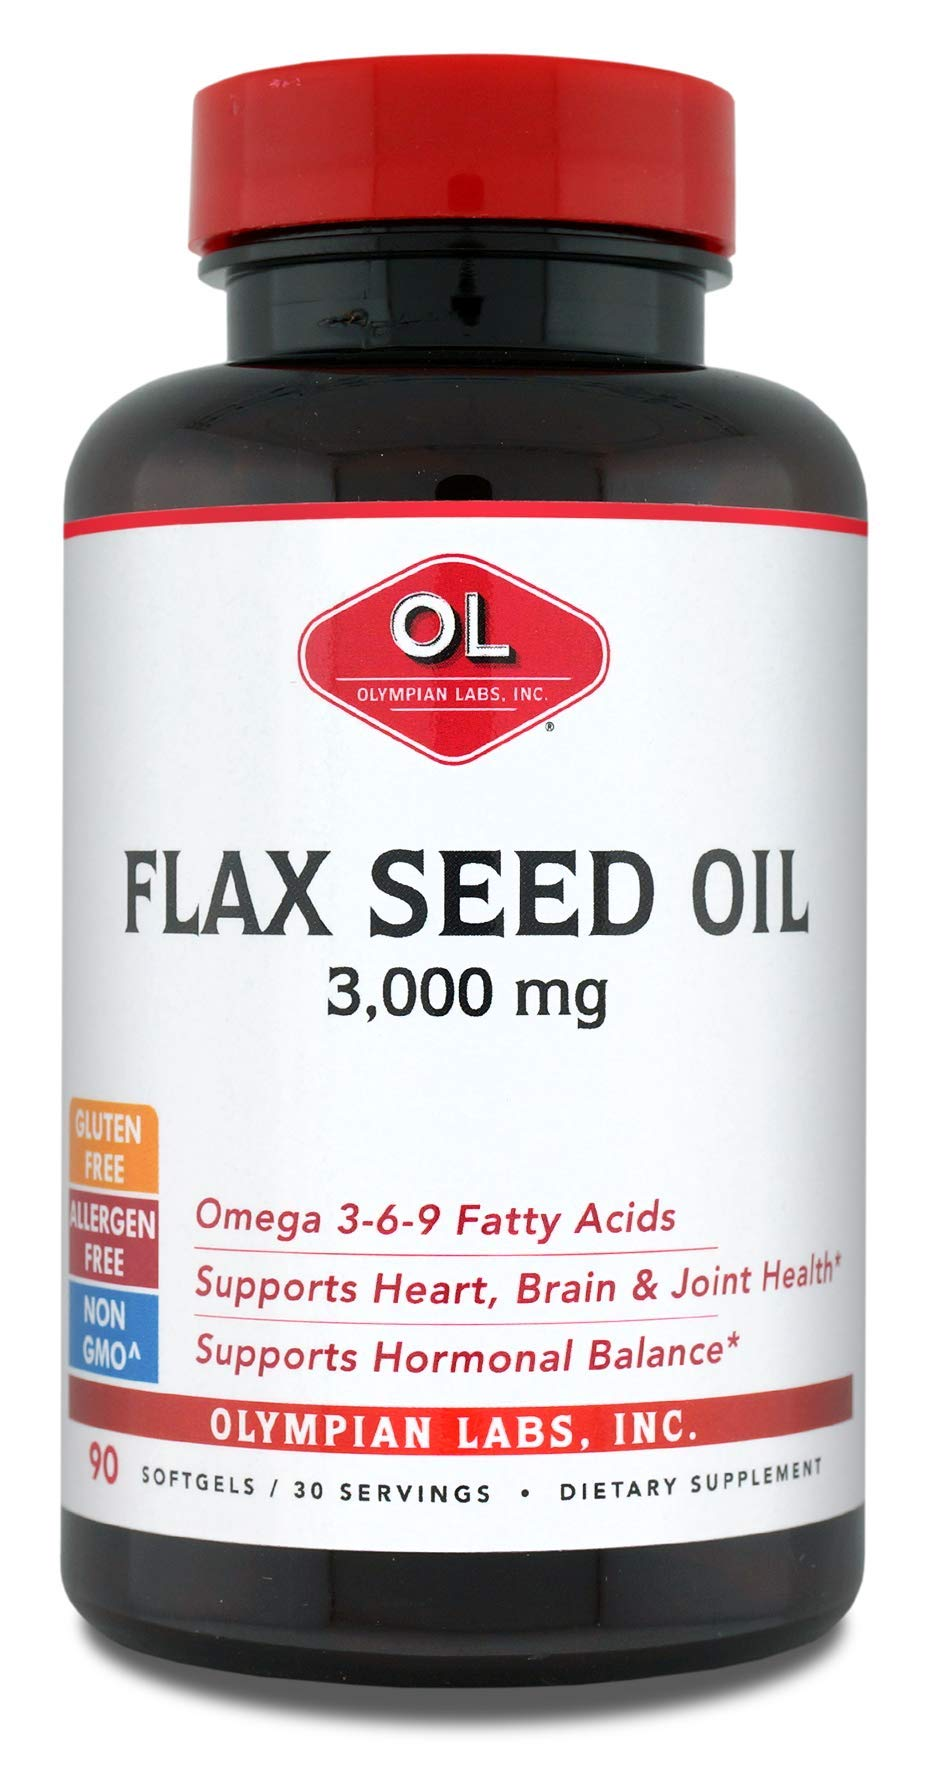 Olympian Labs Flax Seed Oil, High Lignans, 1g (Pack of 2) by Olympian Labs